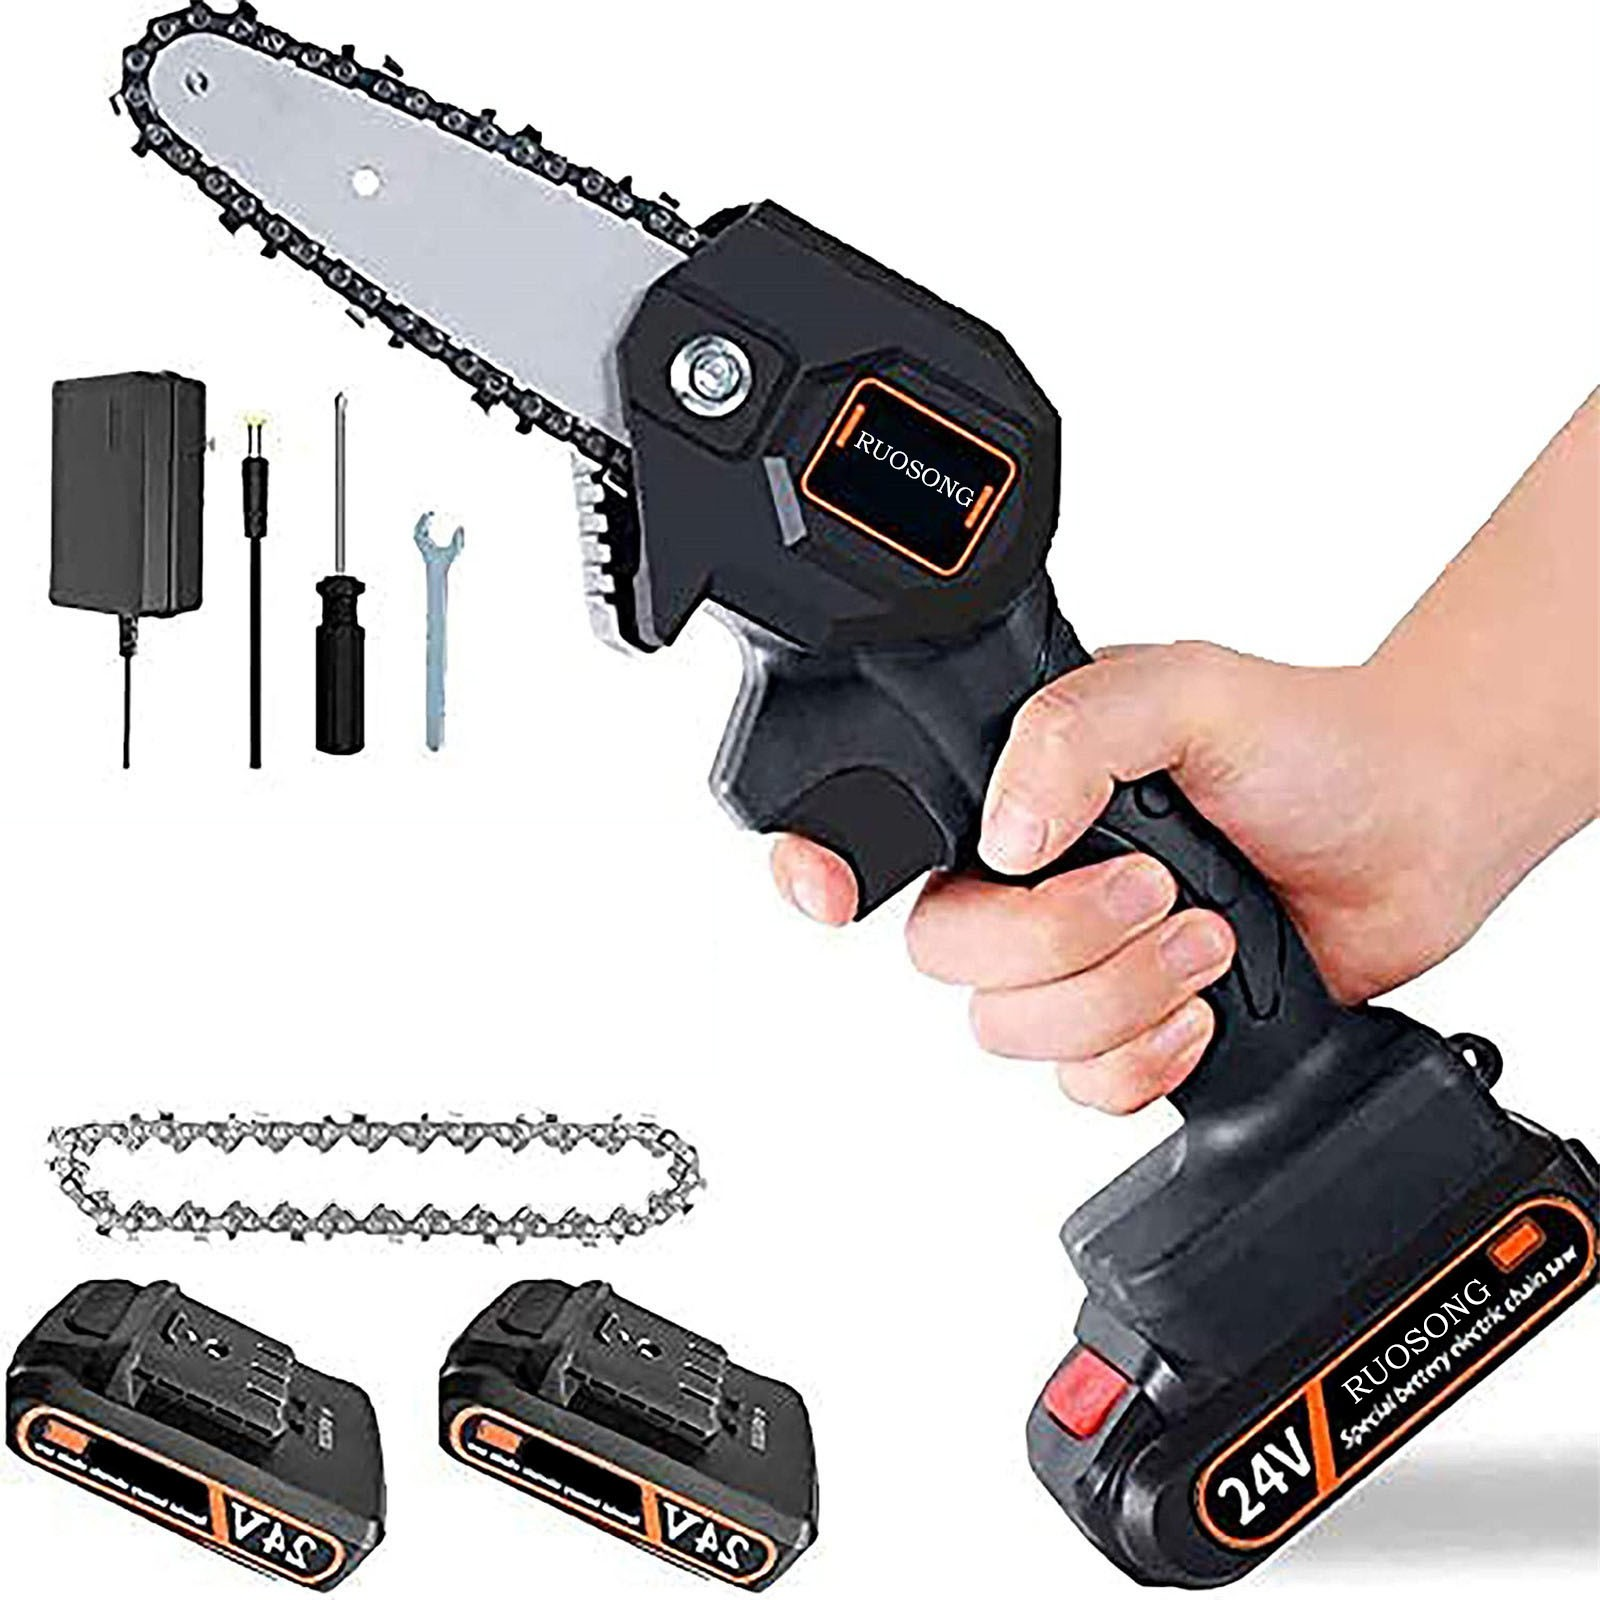 4 Inch The Mini Electric Chainsaw Ever Battery-powered Wood Cutter Rechargeable Best Price 2021 New Hot Sale